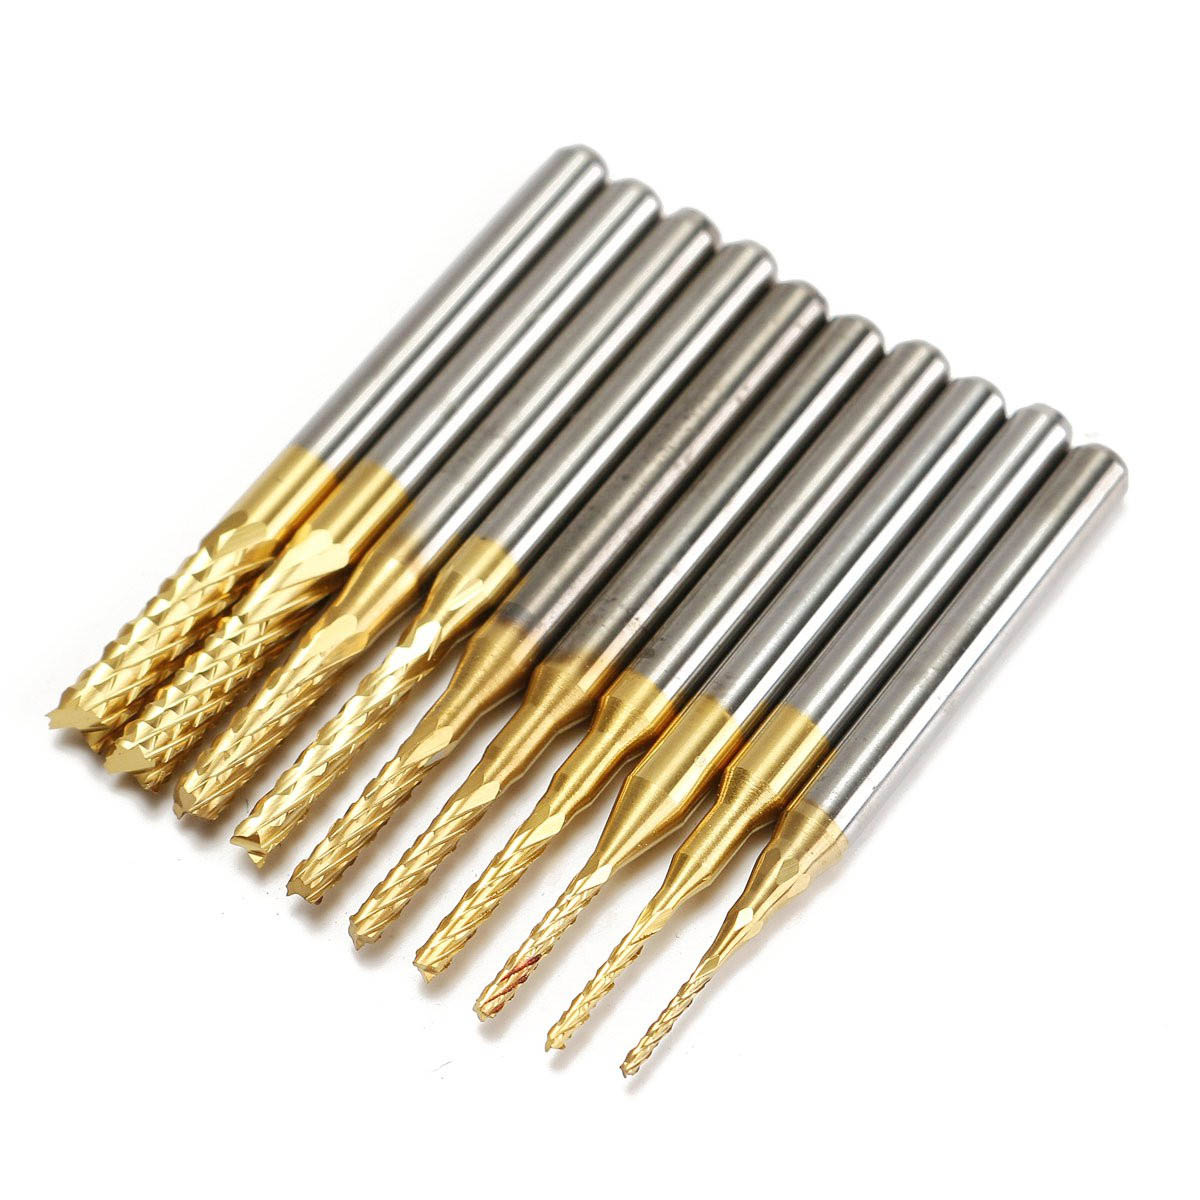 10Pcs/Box Cemented Carbide Drillpro 1/8 0.8-3.175mm CNC PCB Drill Bit Engraving Mill Cutter Durable Quality ariston abs pro eco inox pw 100 v